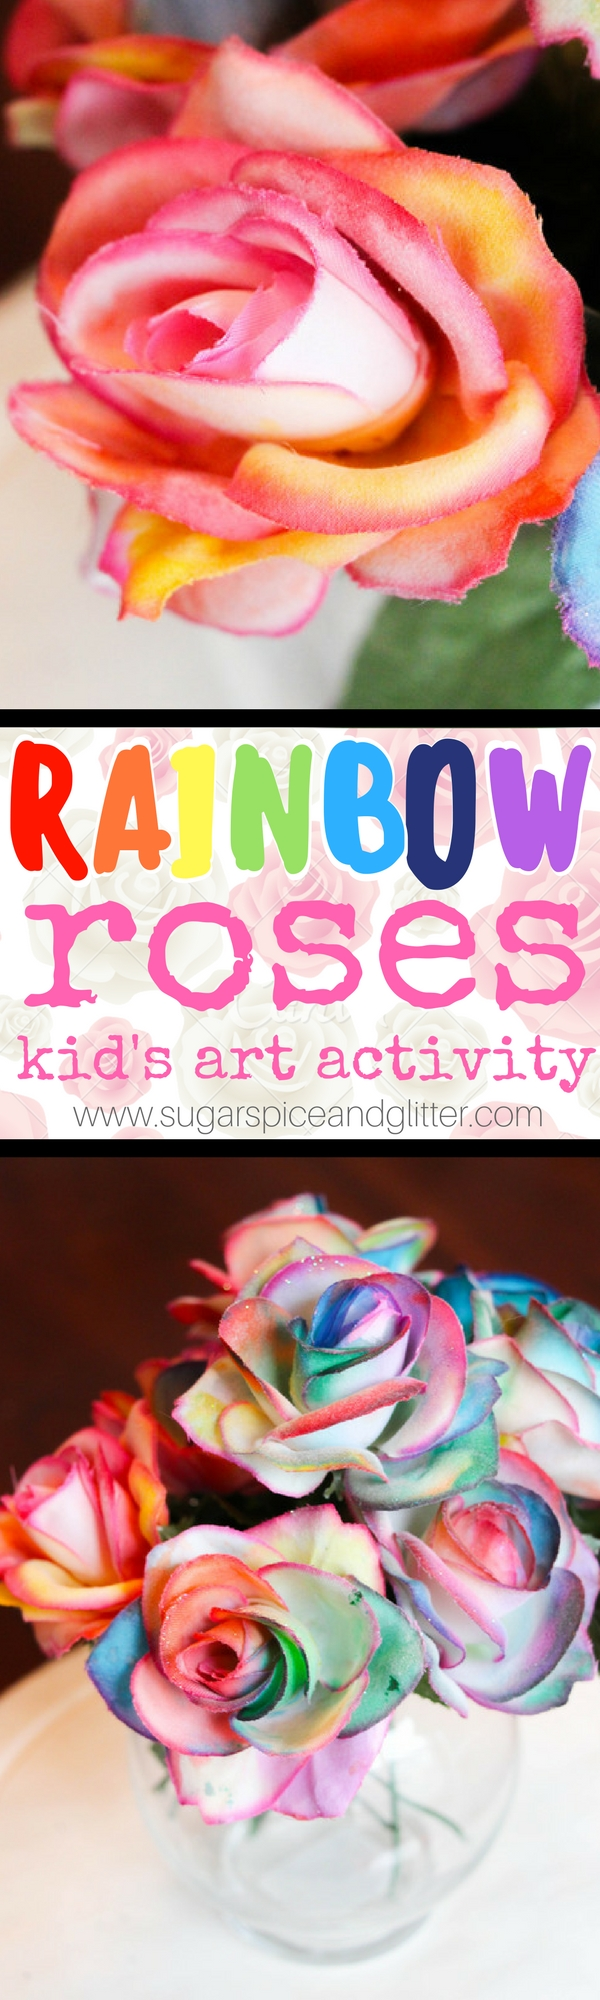 This easy rose craft for kids doubles as a beautiful Valentine's Day craft, Mother's Day craft - or just a pretty way to add some color to your home! An alice in wonderland inspired activity based on the Queen of Heart's painting the roses red